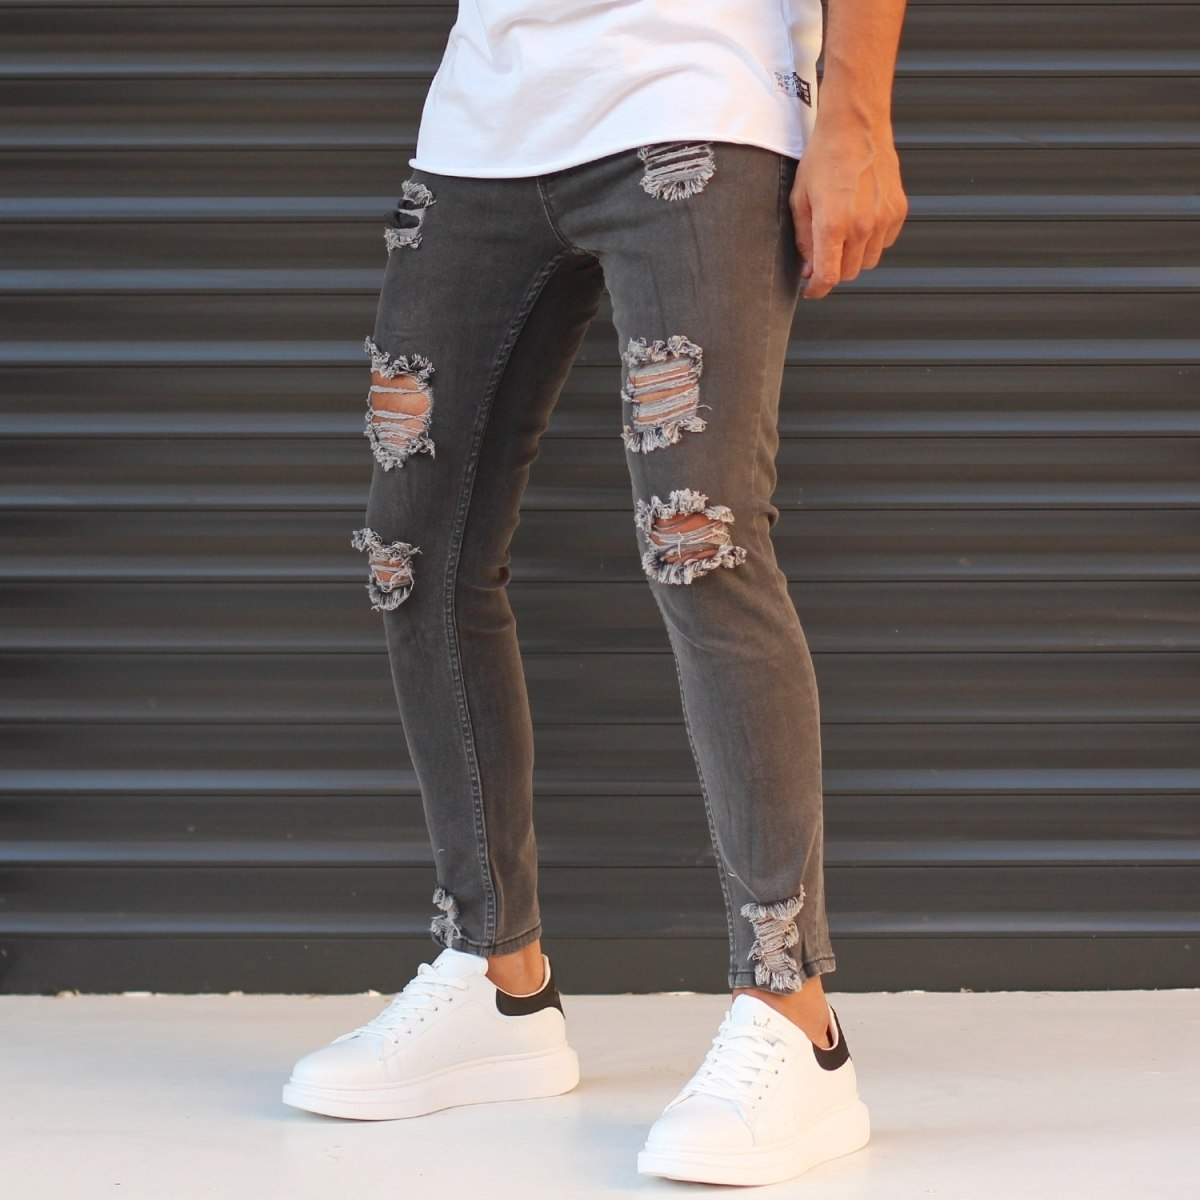 Men's Jeans With Rips In Anthracite Mv Premium Brand - 2